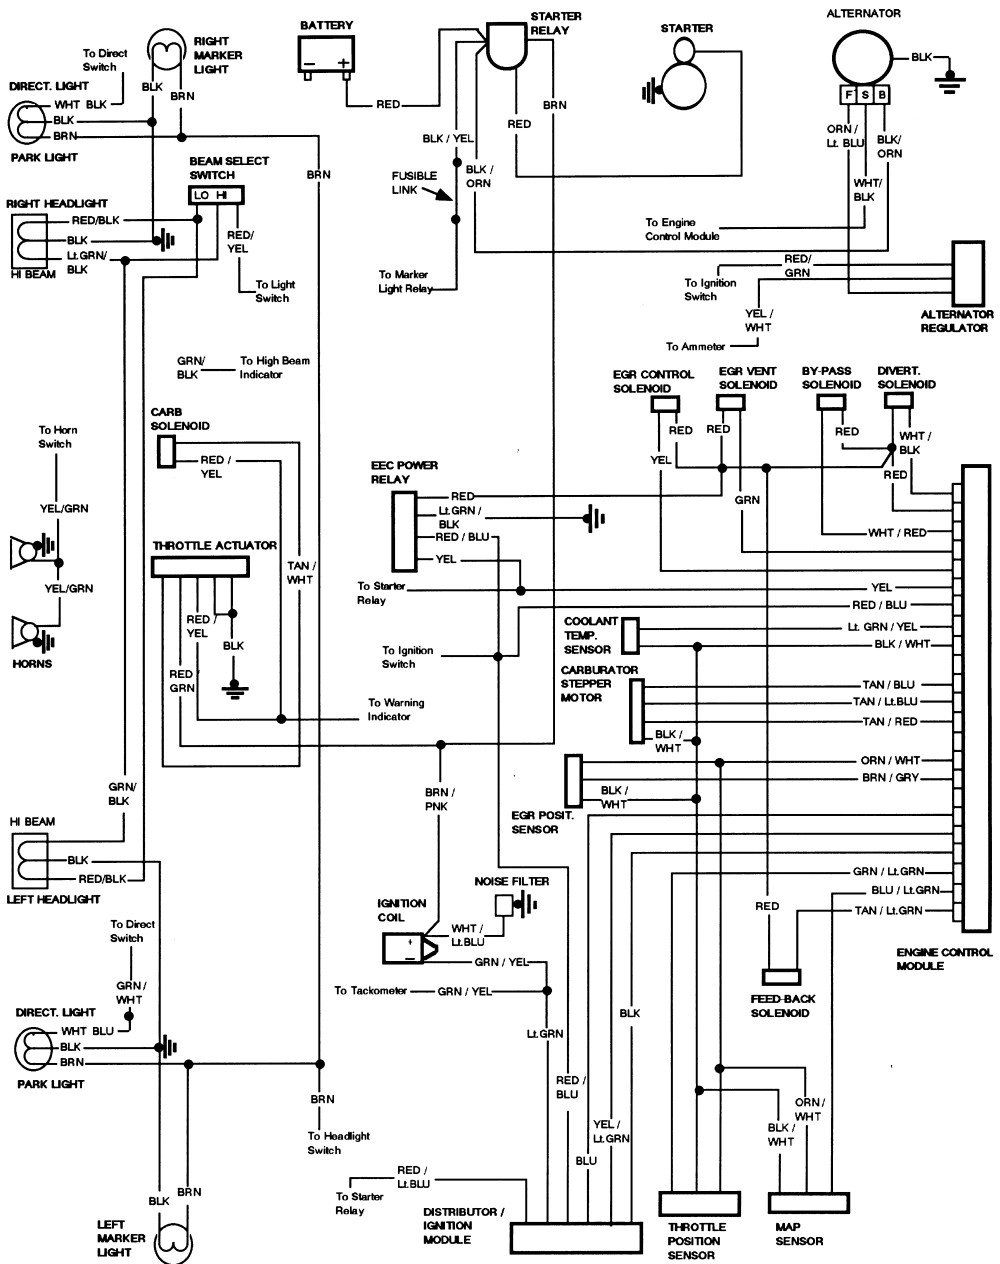 ford f350 wiring diagram free – wiring diagram collection